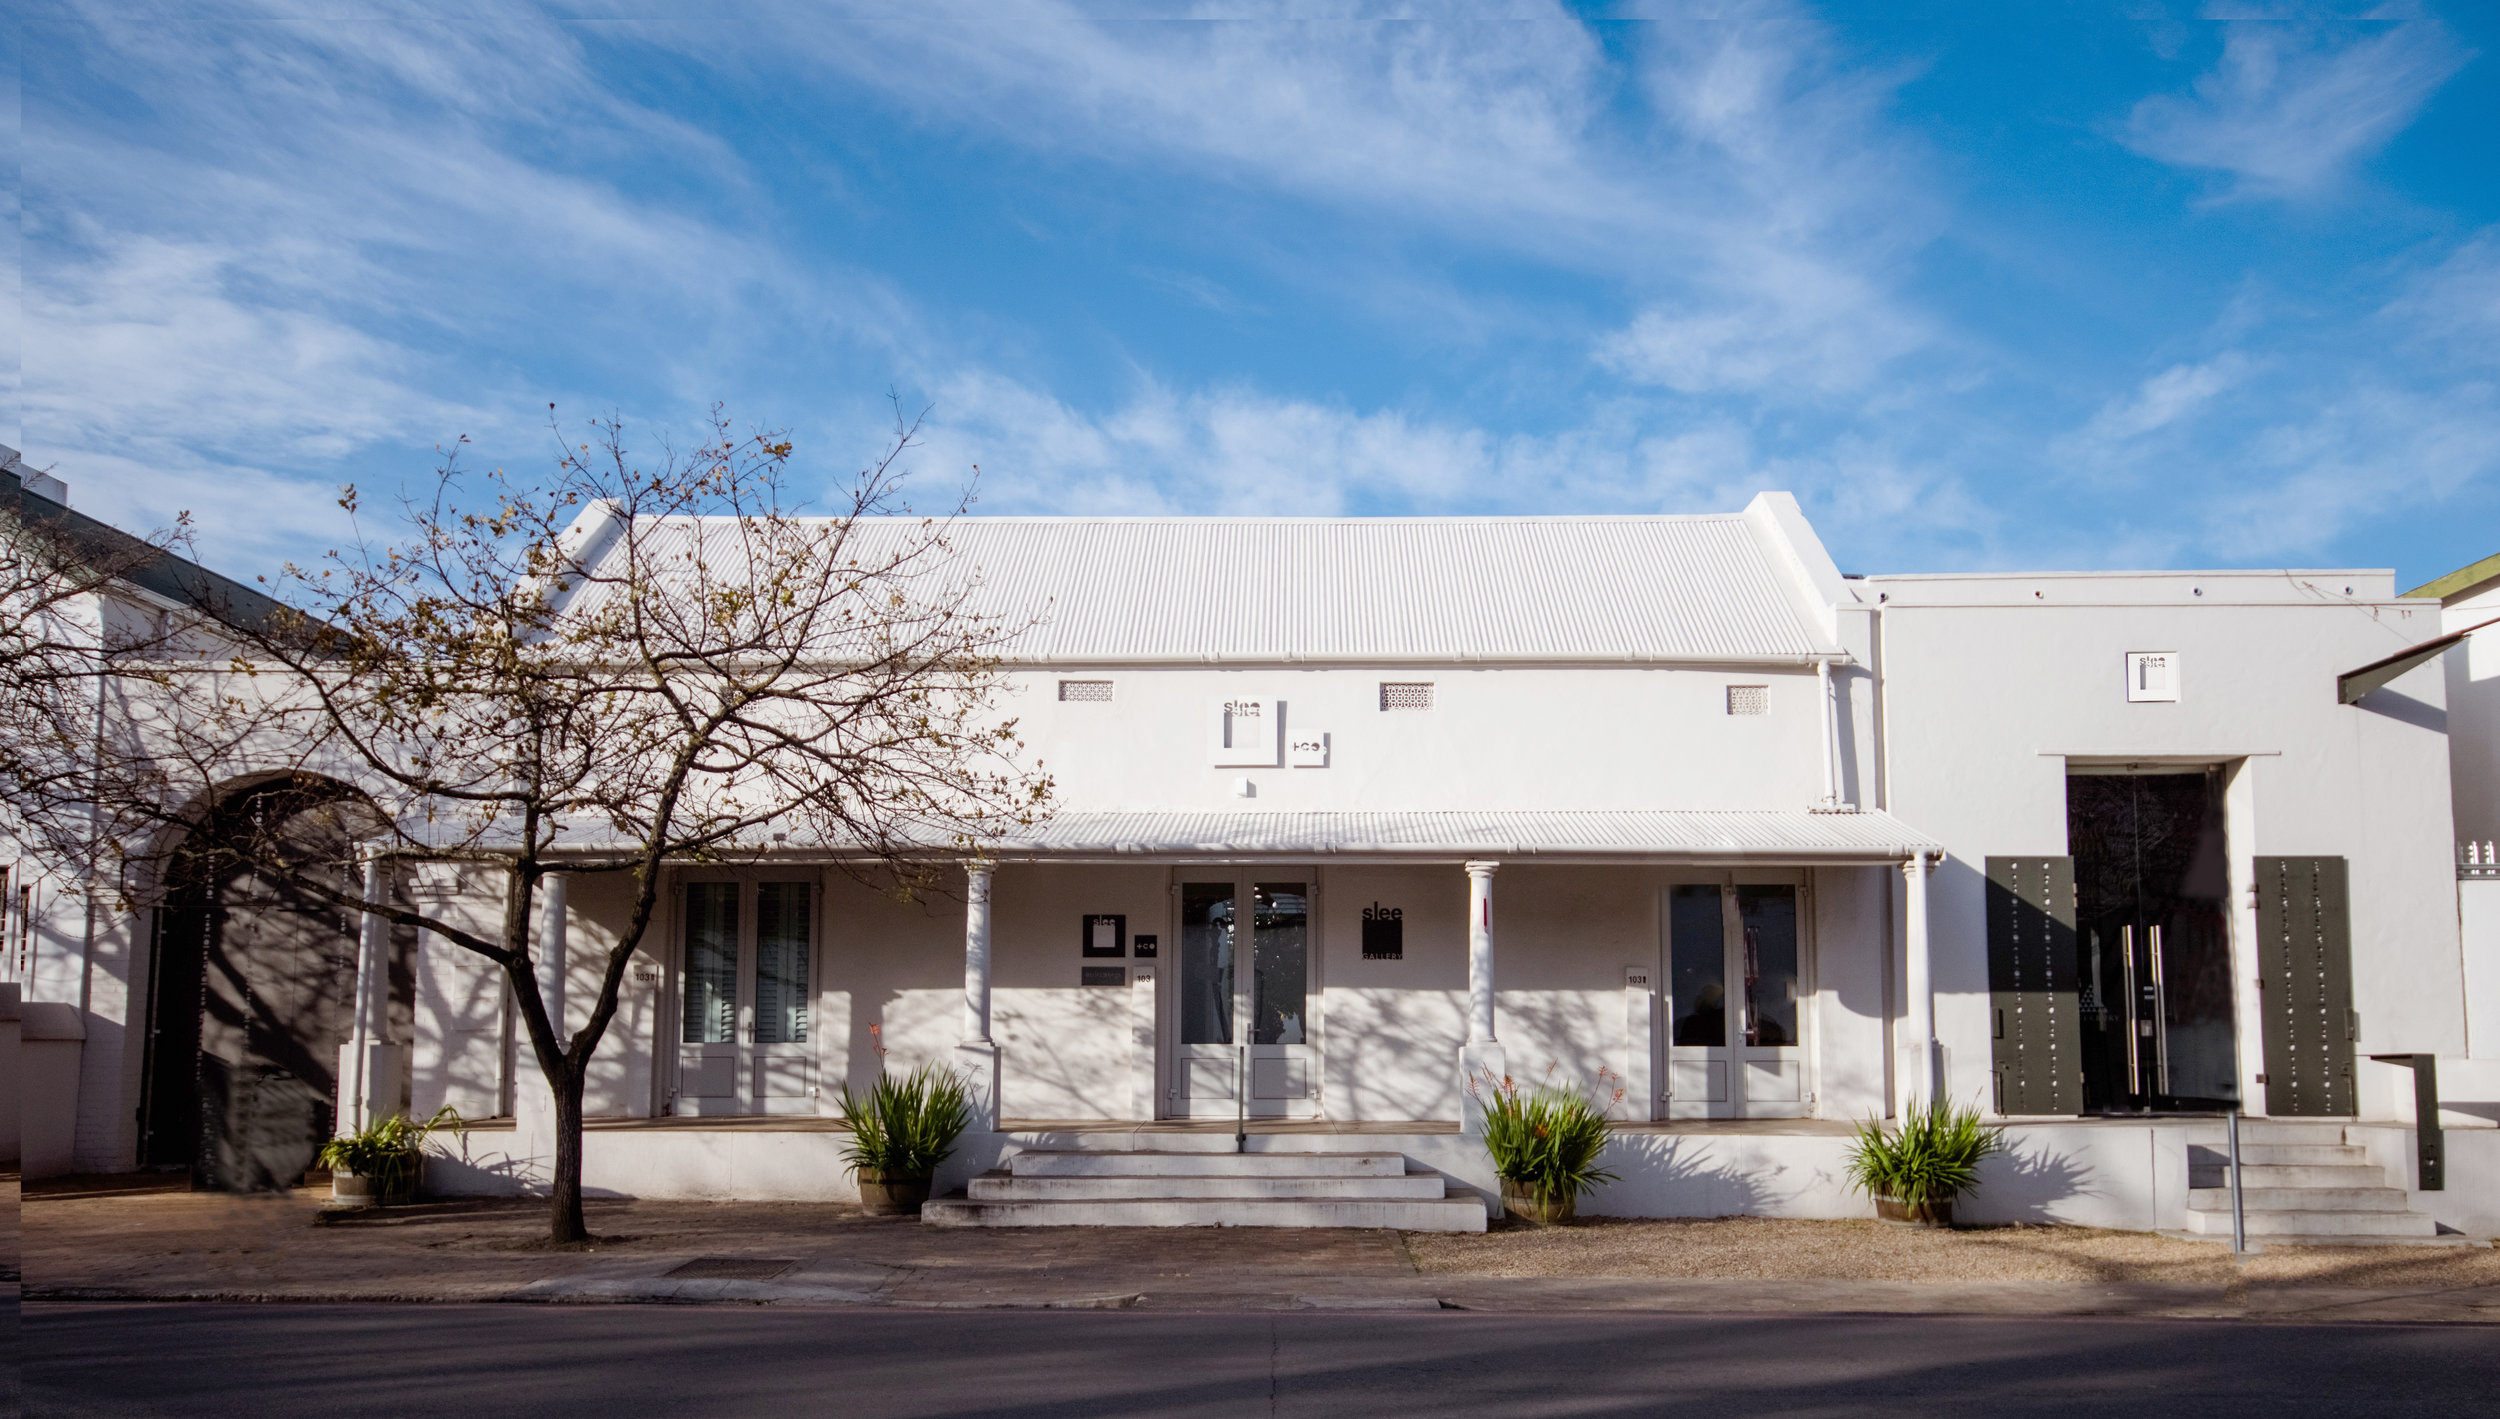 Slee & Co. Architects office, 103 Dorp Street, Stellenbosch